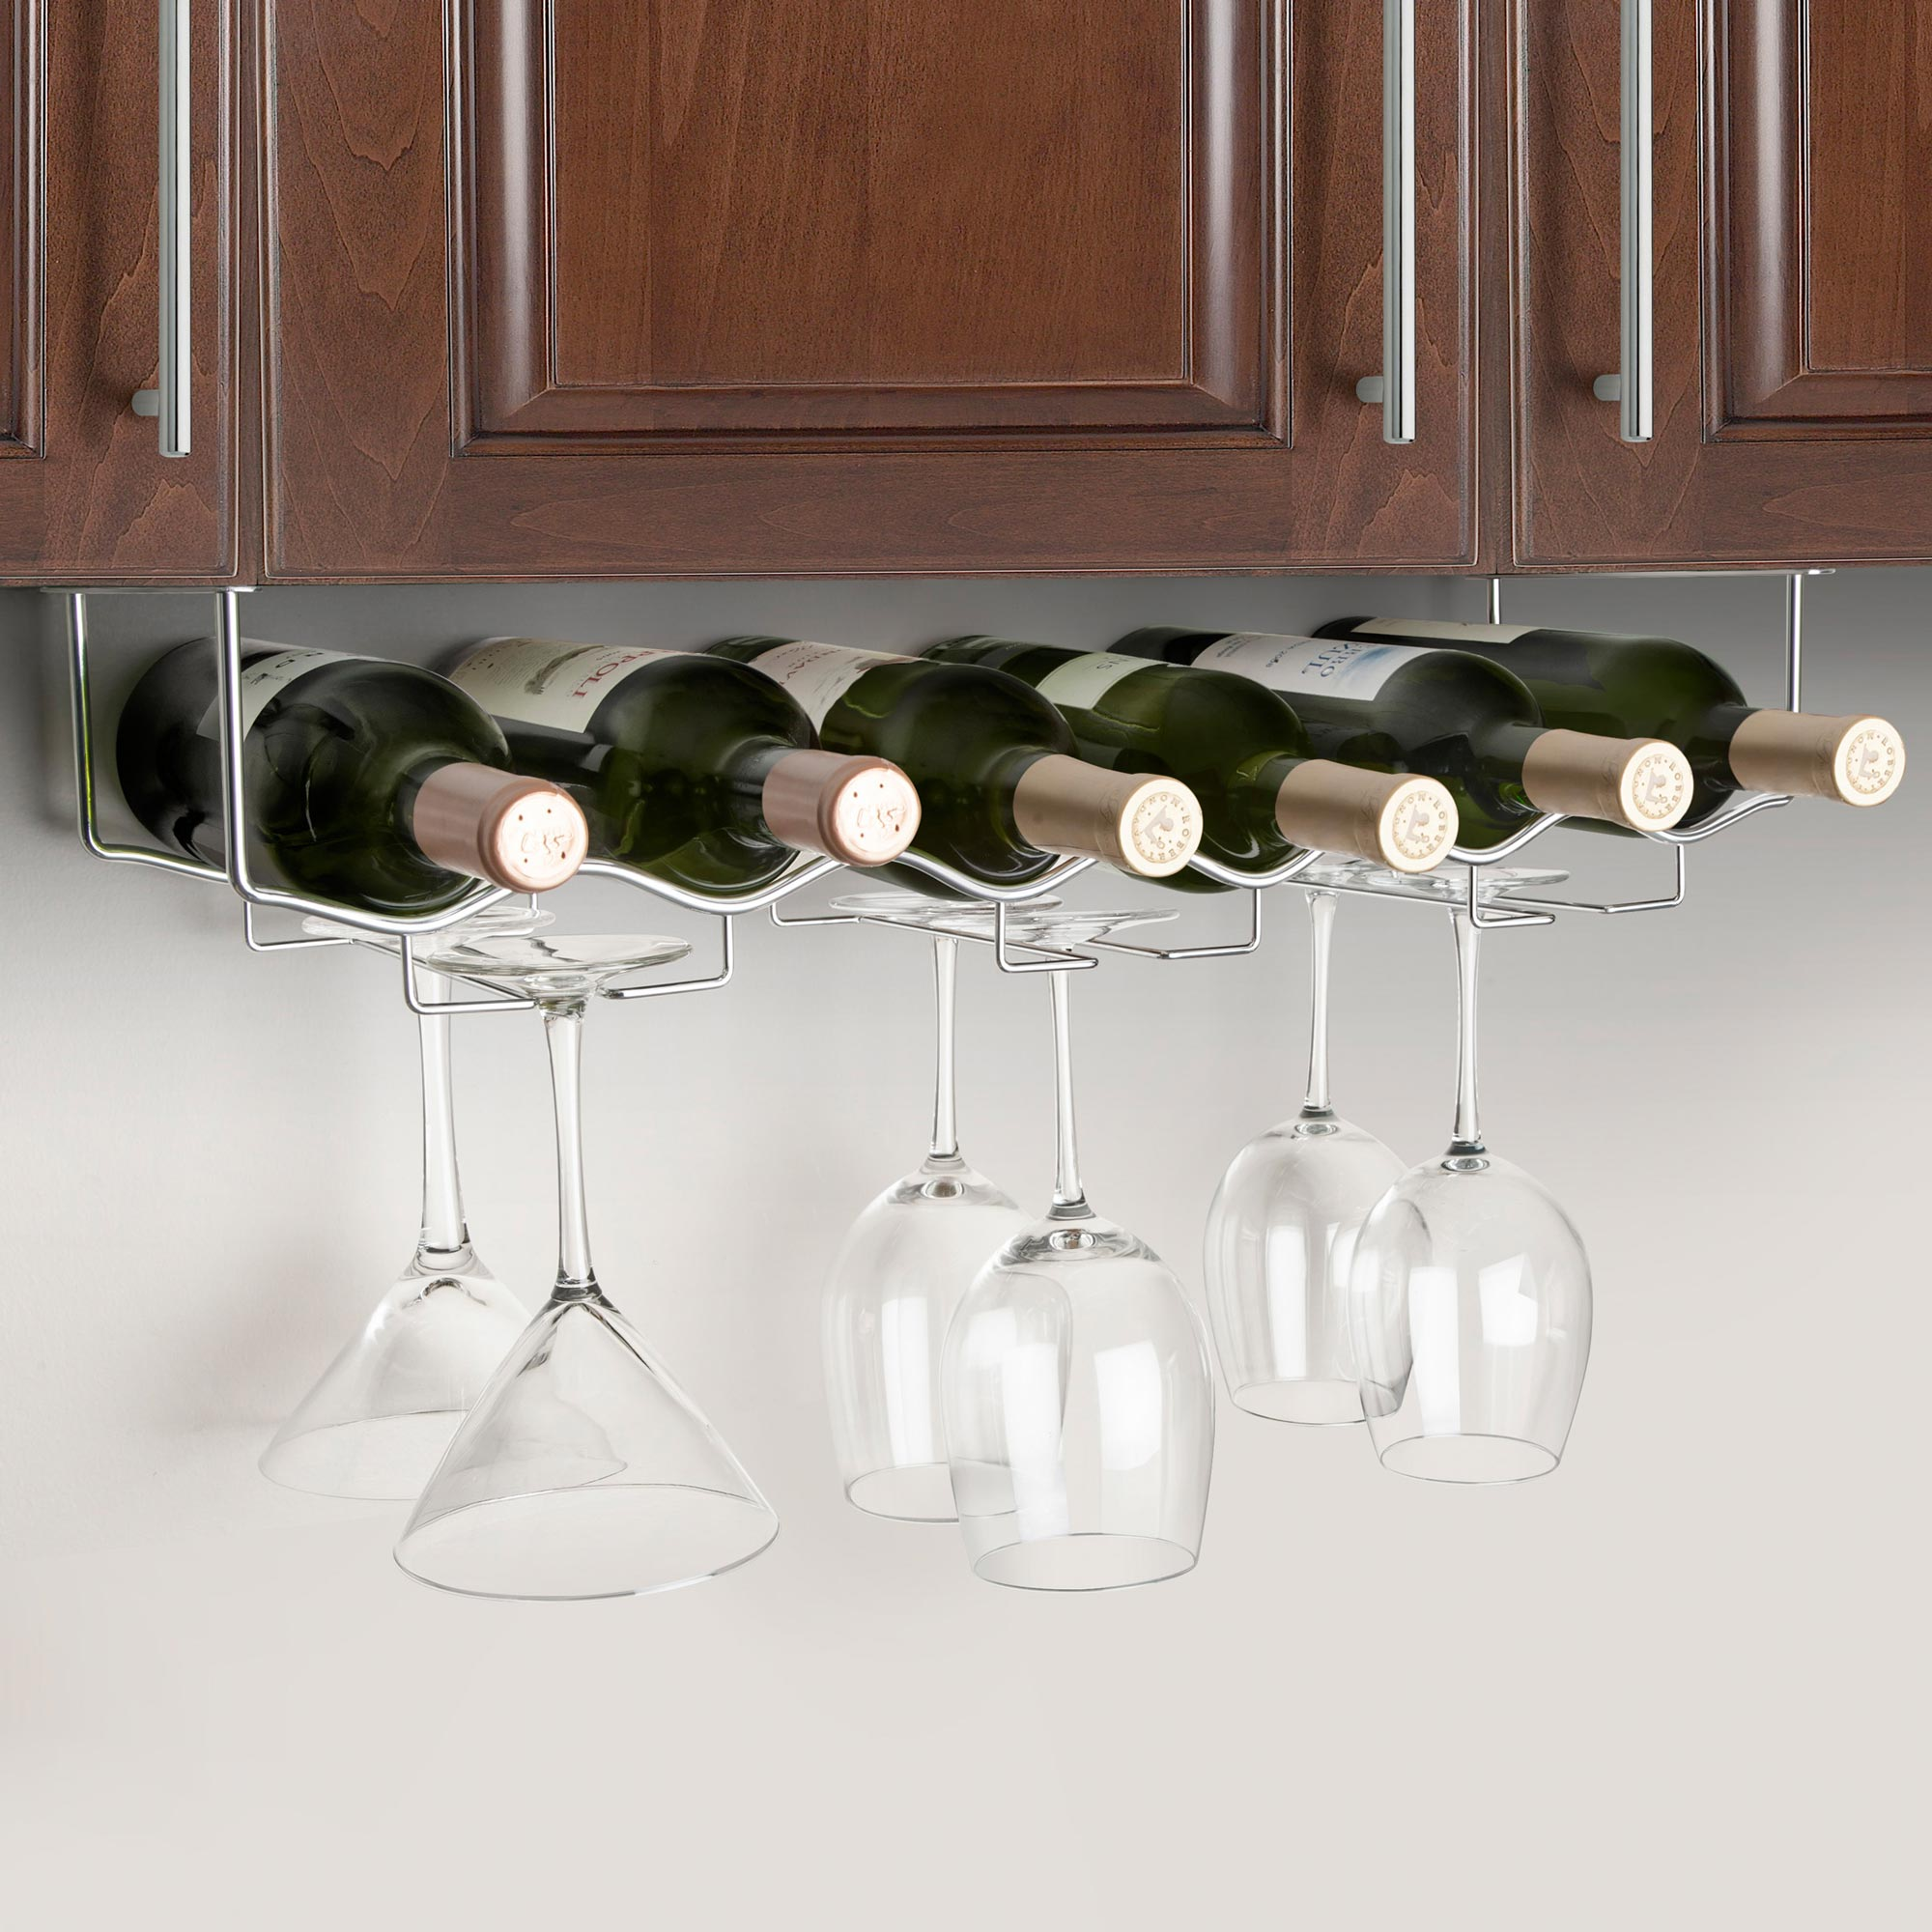 final touch under cabinet wine rack -